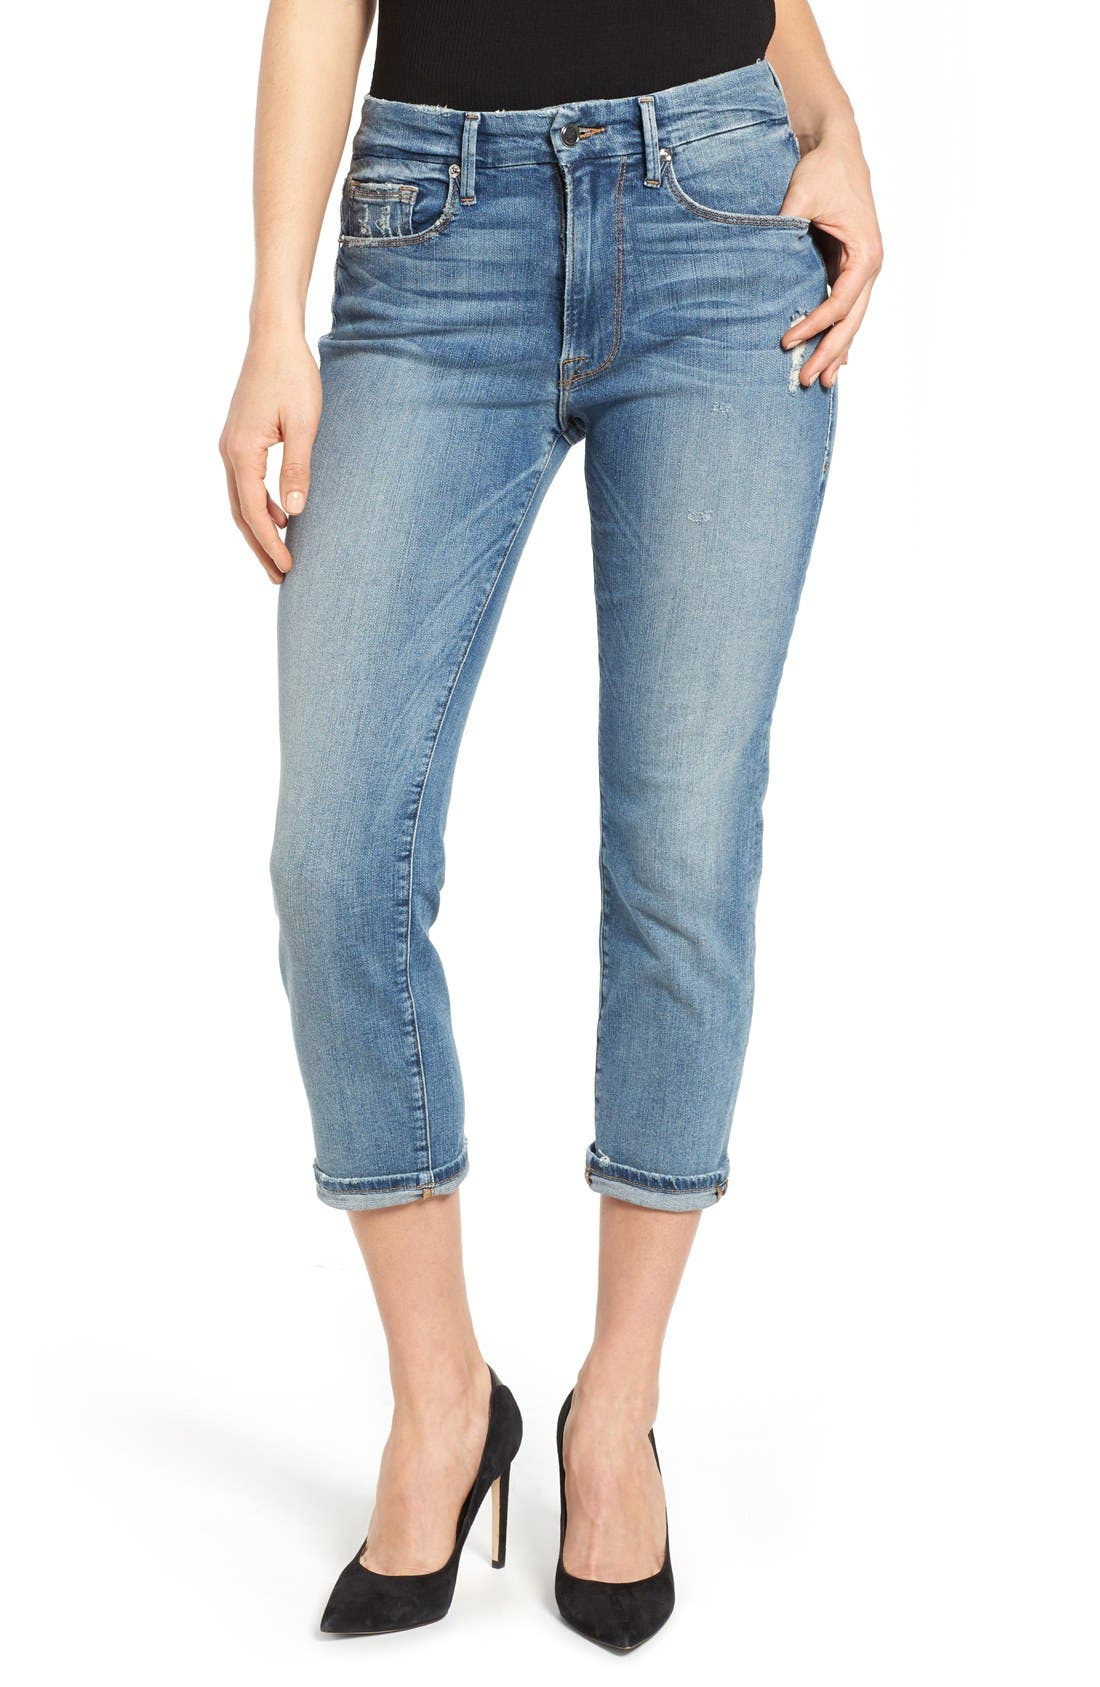 Alternate Image 1 Selected - Good American Good Cuts High Rise Boyfriend Jeans (Blue 012) (Extended Sizes)